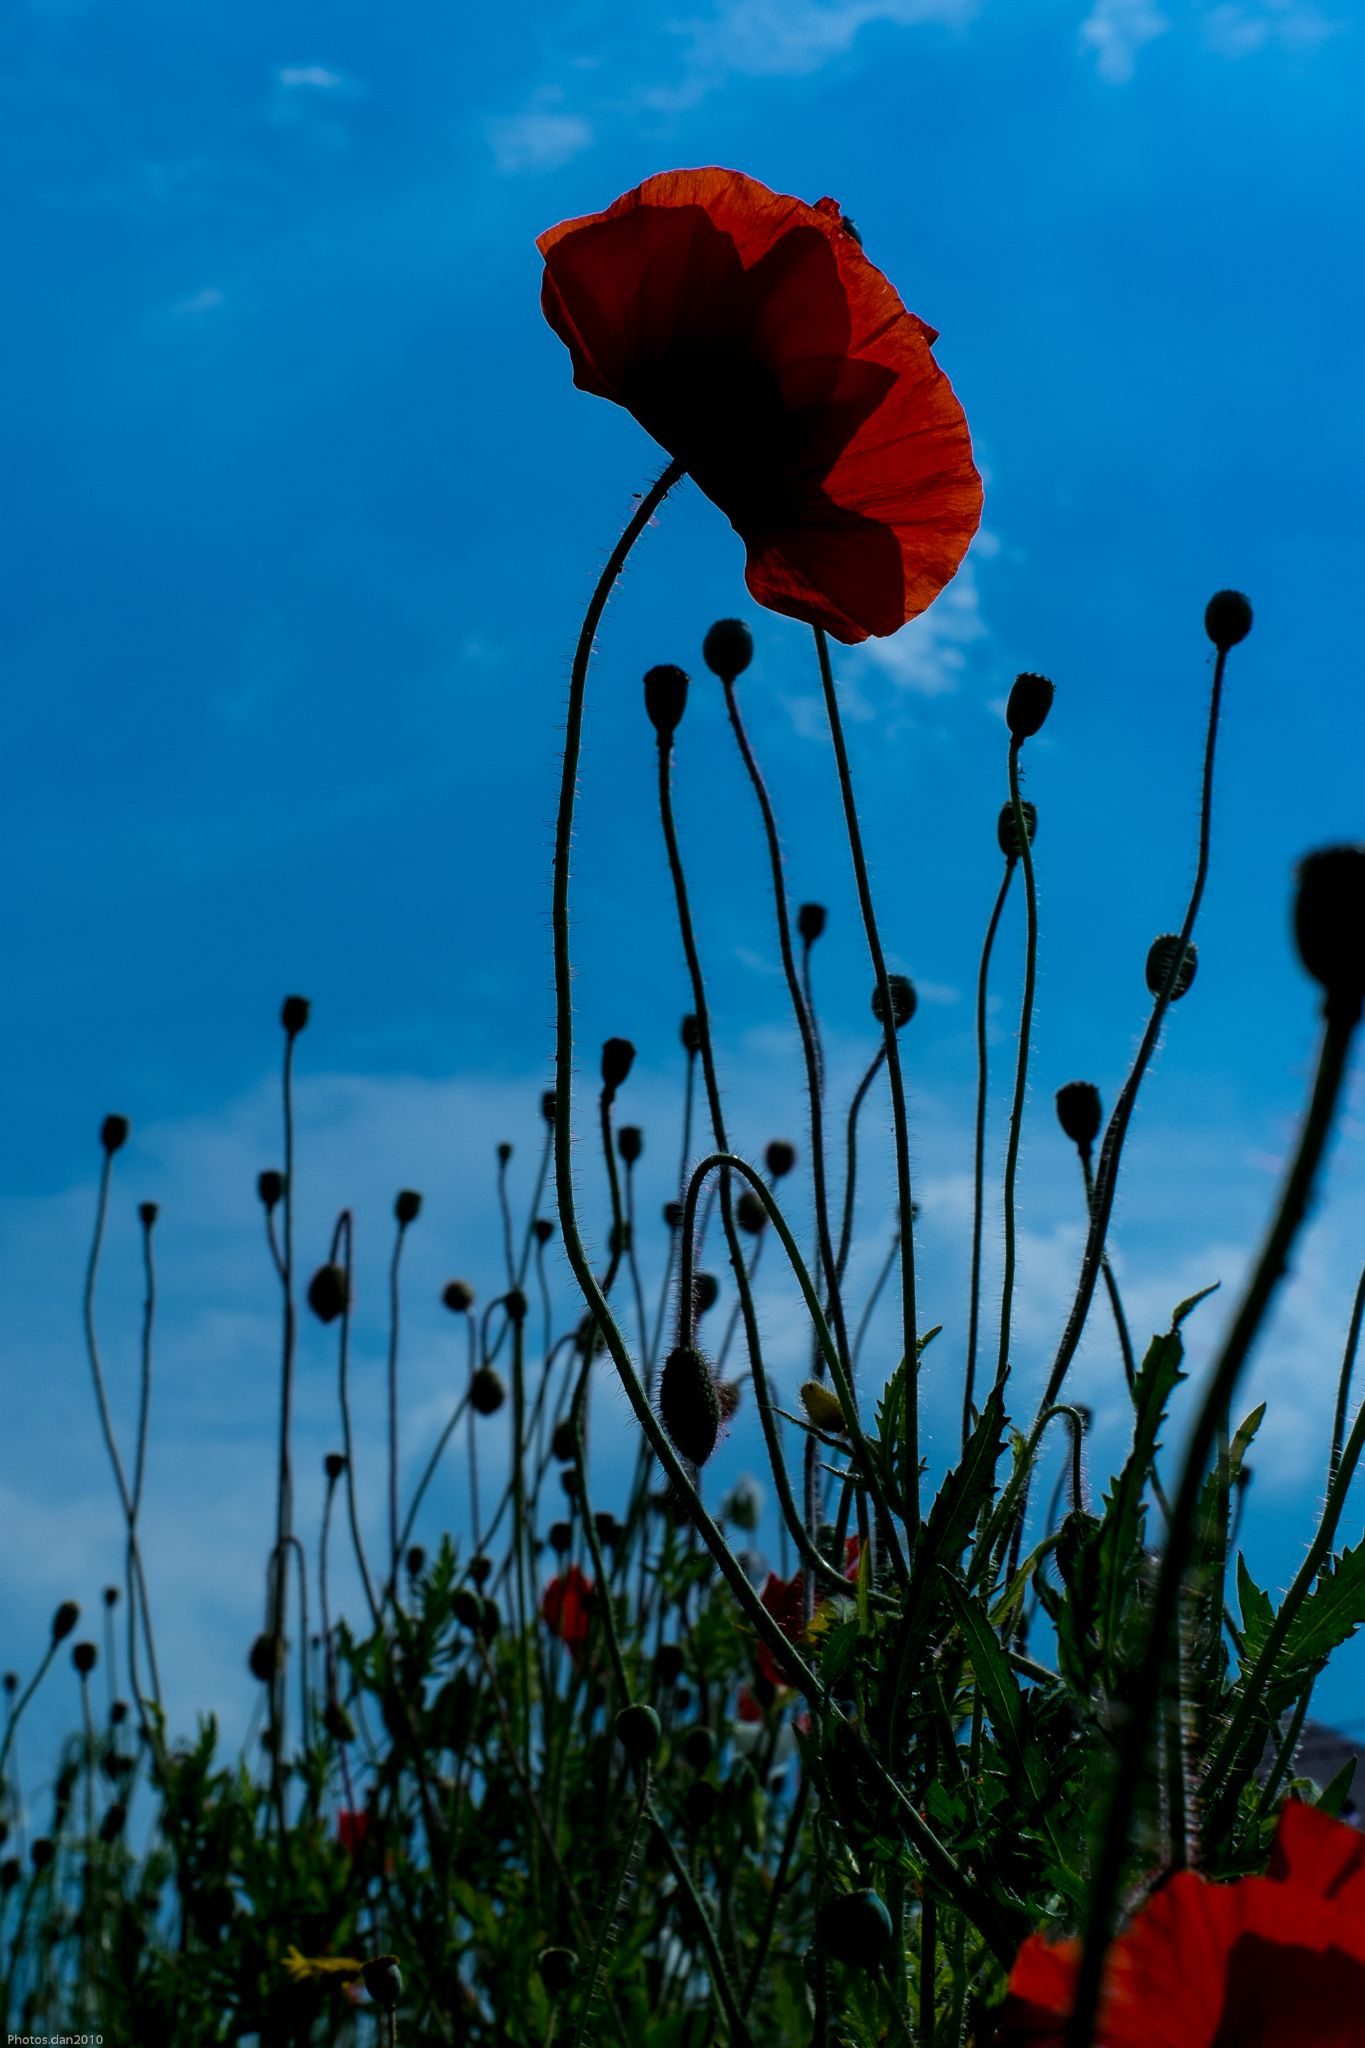 _DSF3345...Gentils coquelicots!!!!! by photosdan